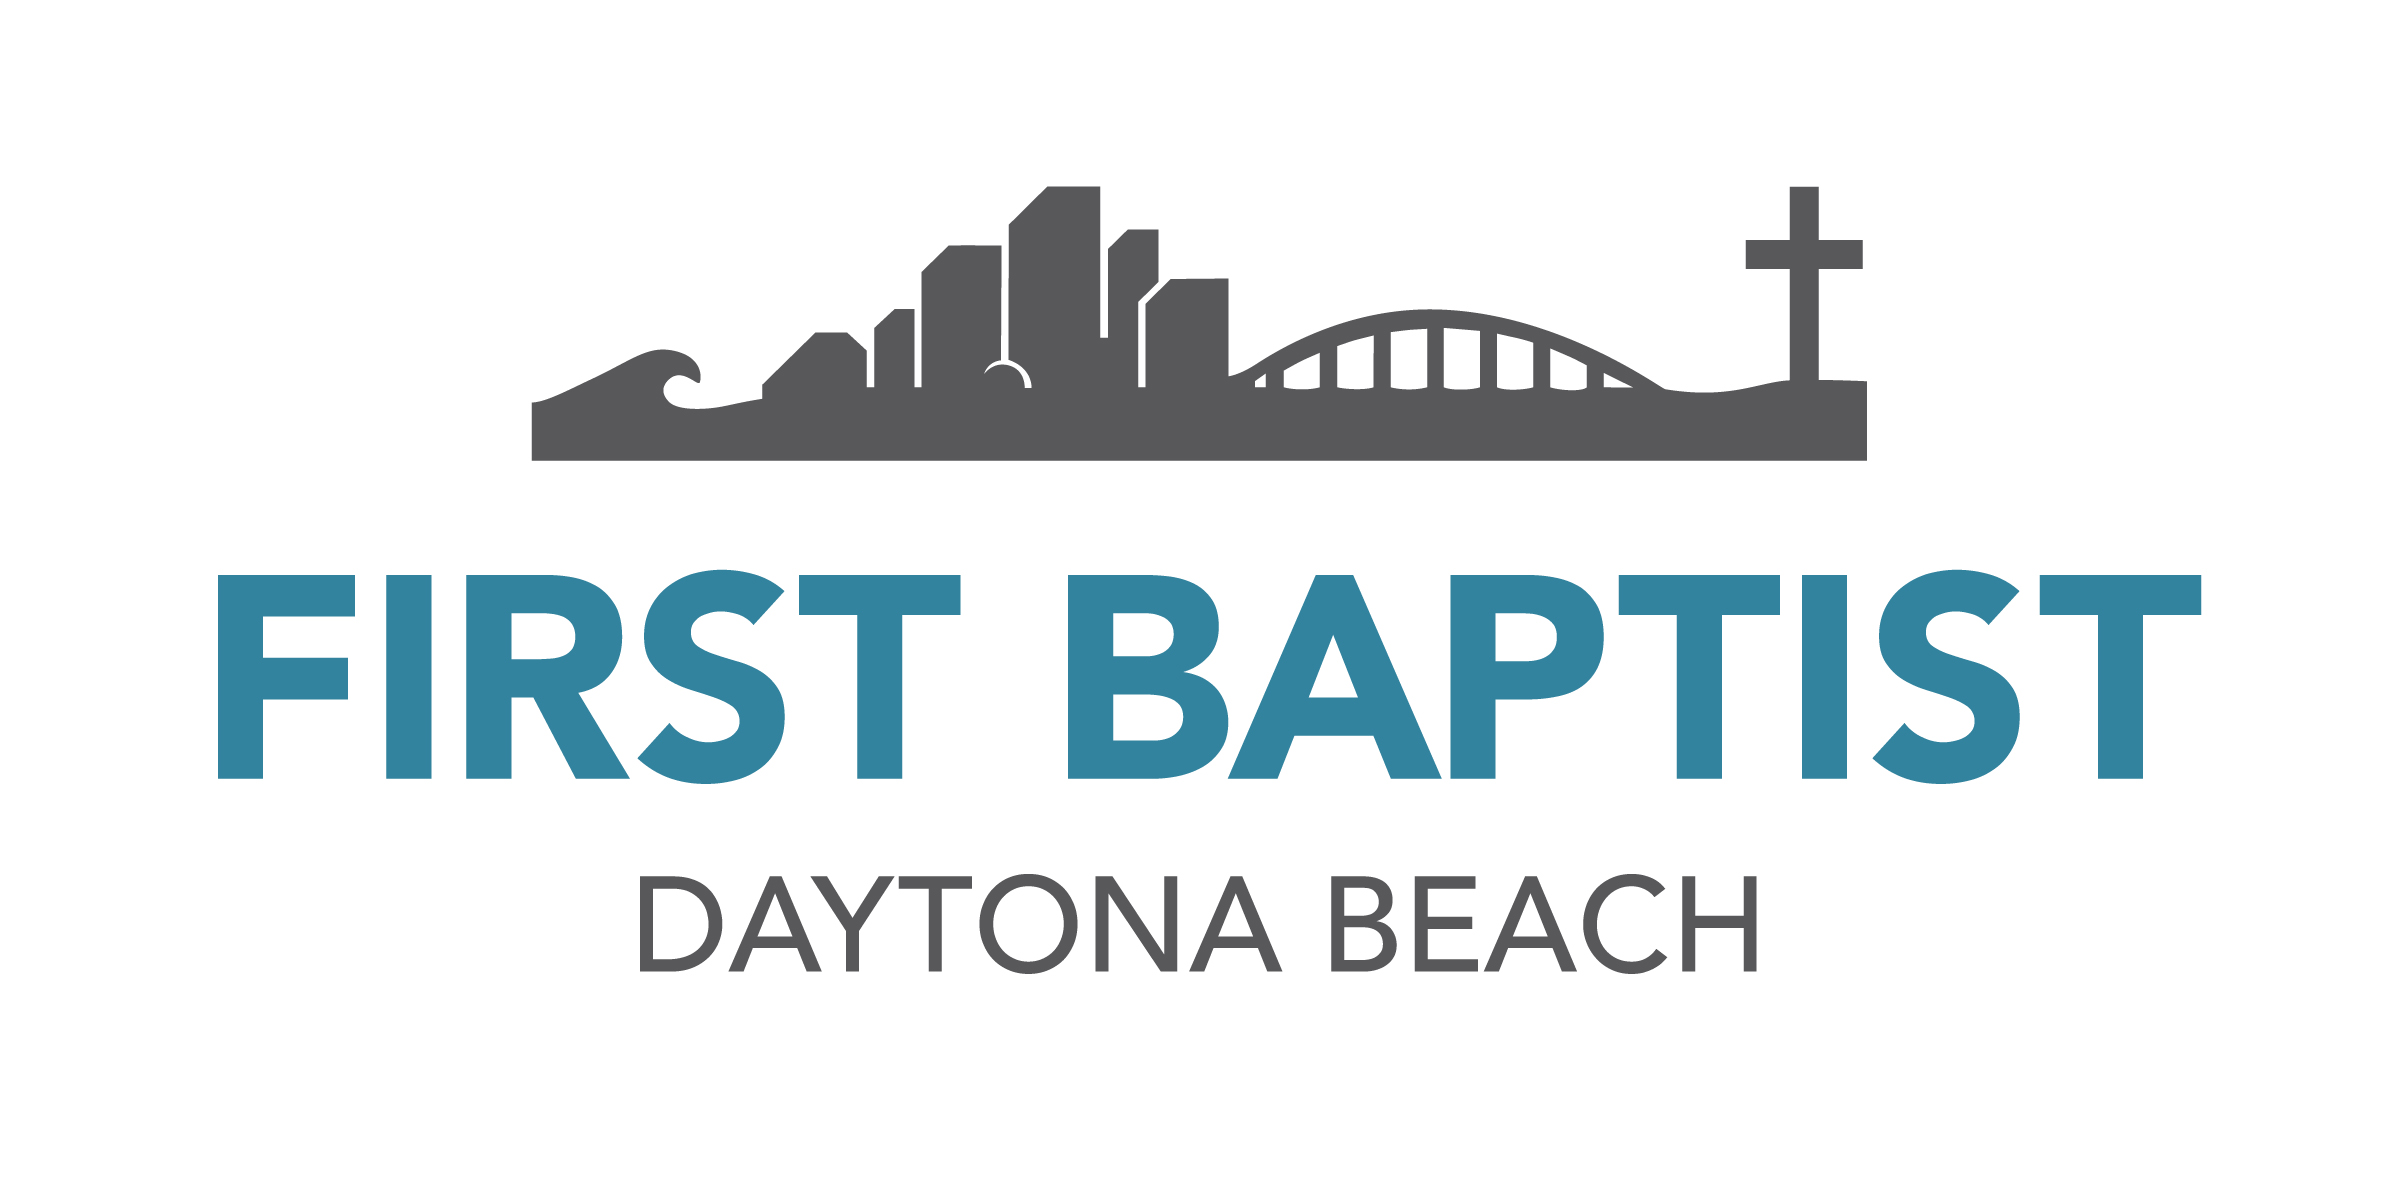 First Baptist Daytona of Daytona Beach, FL